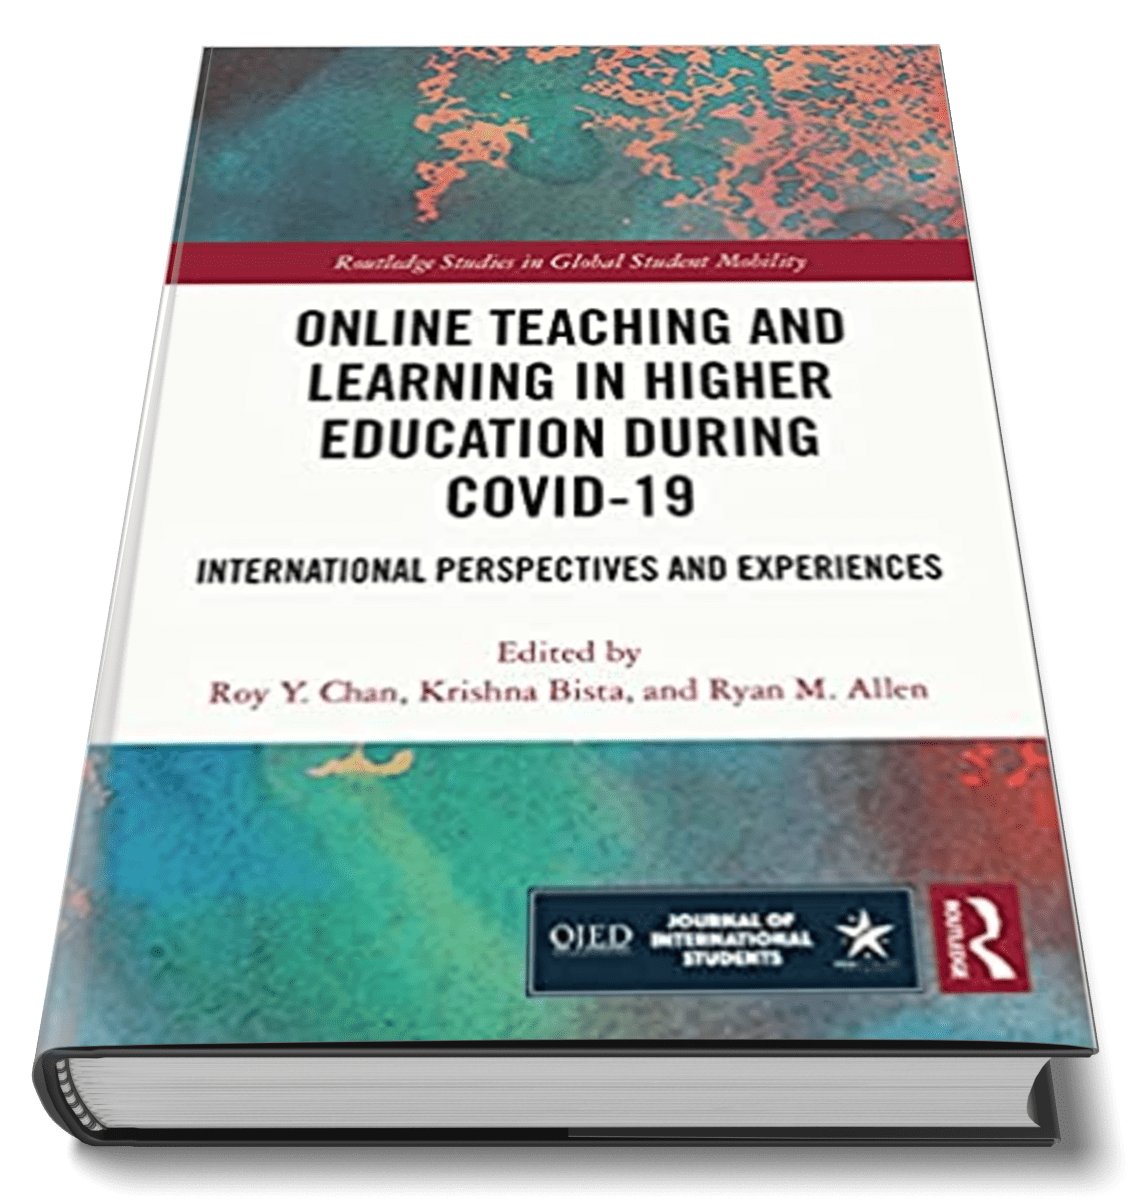 View 2021: Online Teaching and Learning in Higher Education during COVID-19